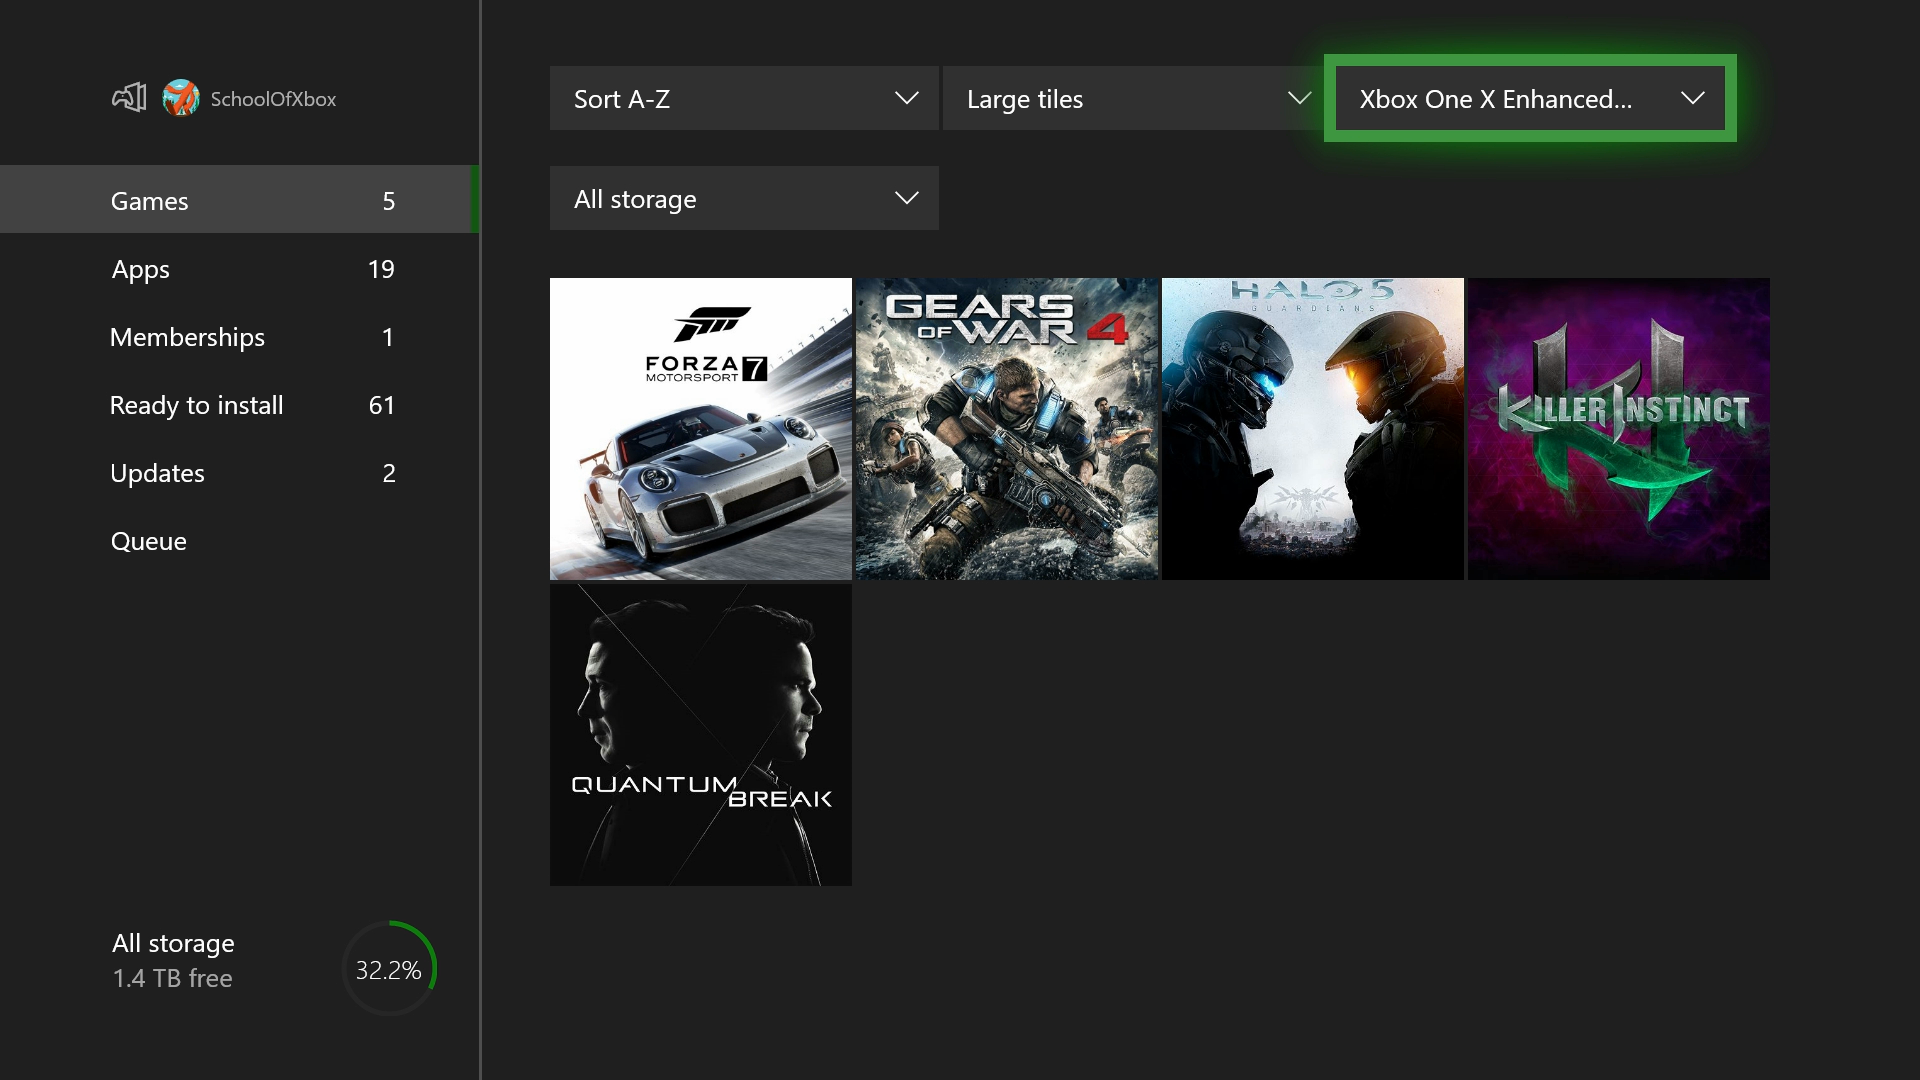 How Do I Know If My Games Are Updated for Xbox One X?